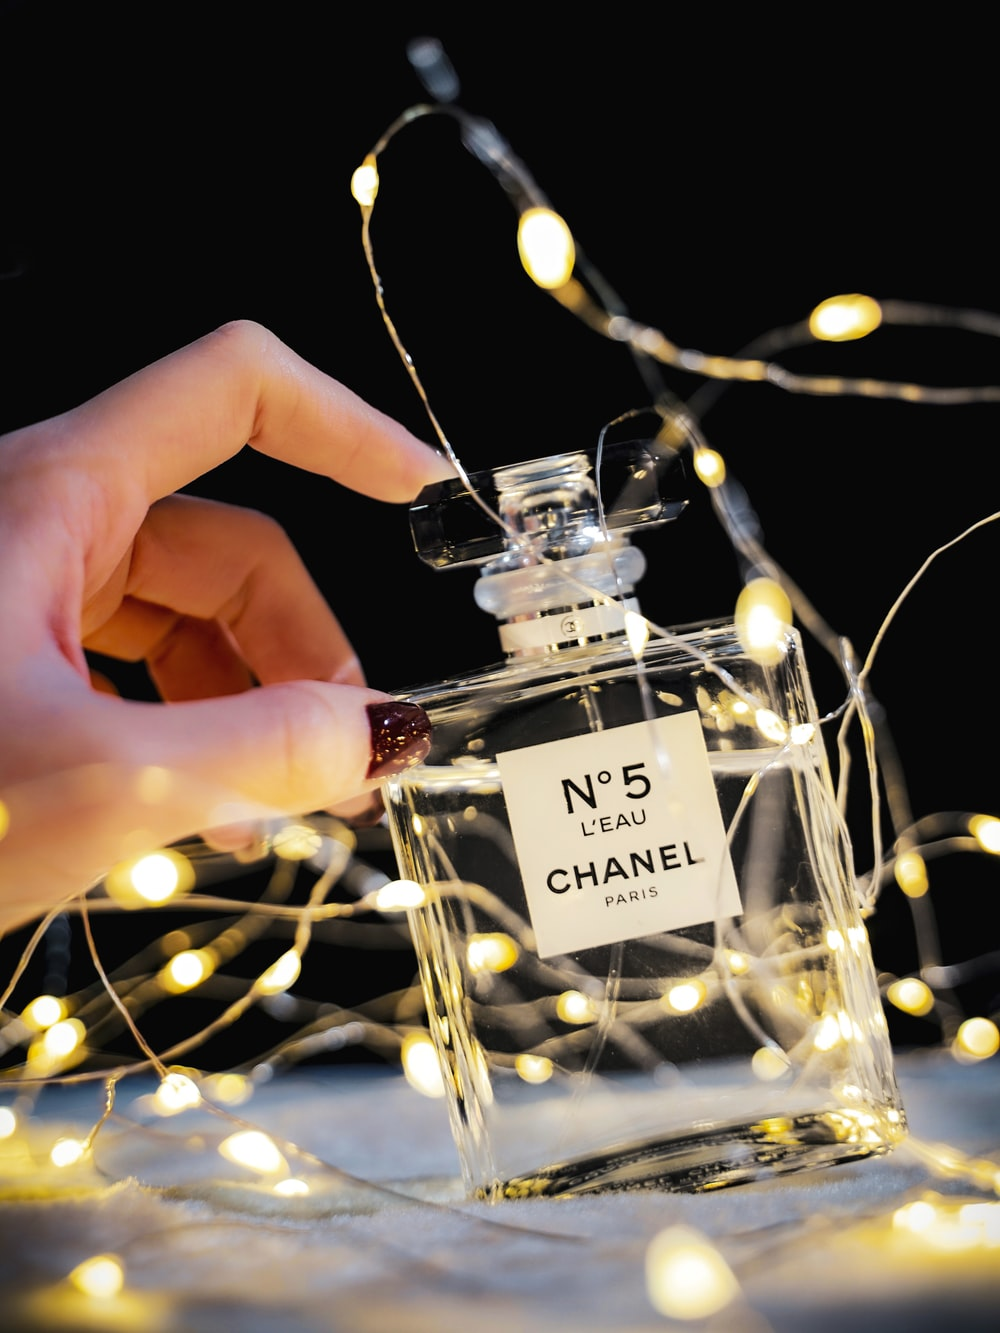 person holding clear glass perfume bottle